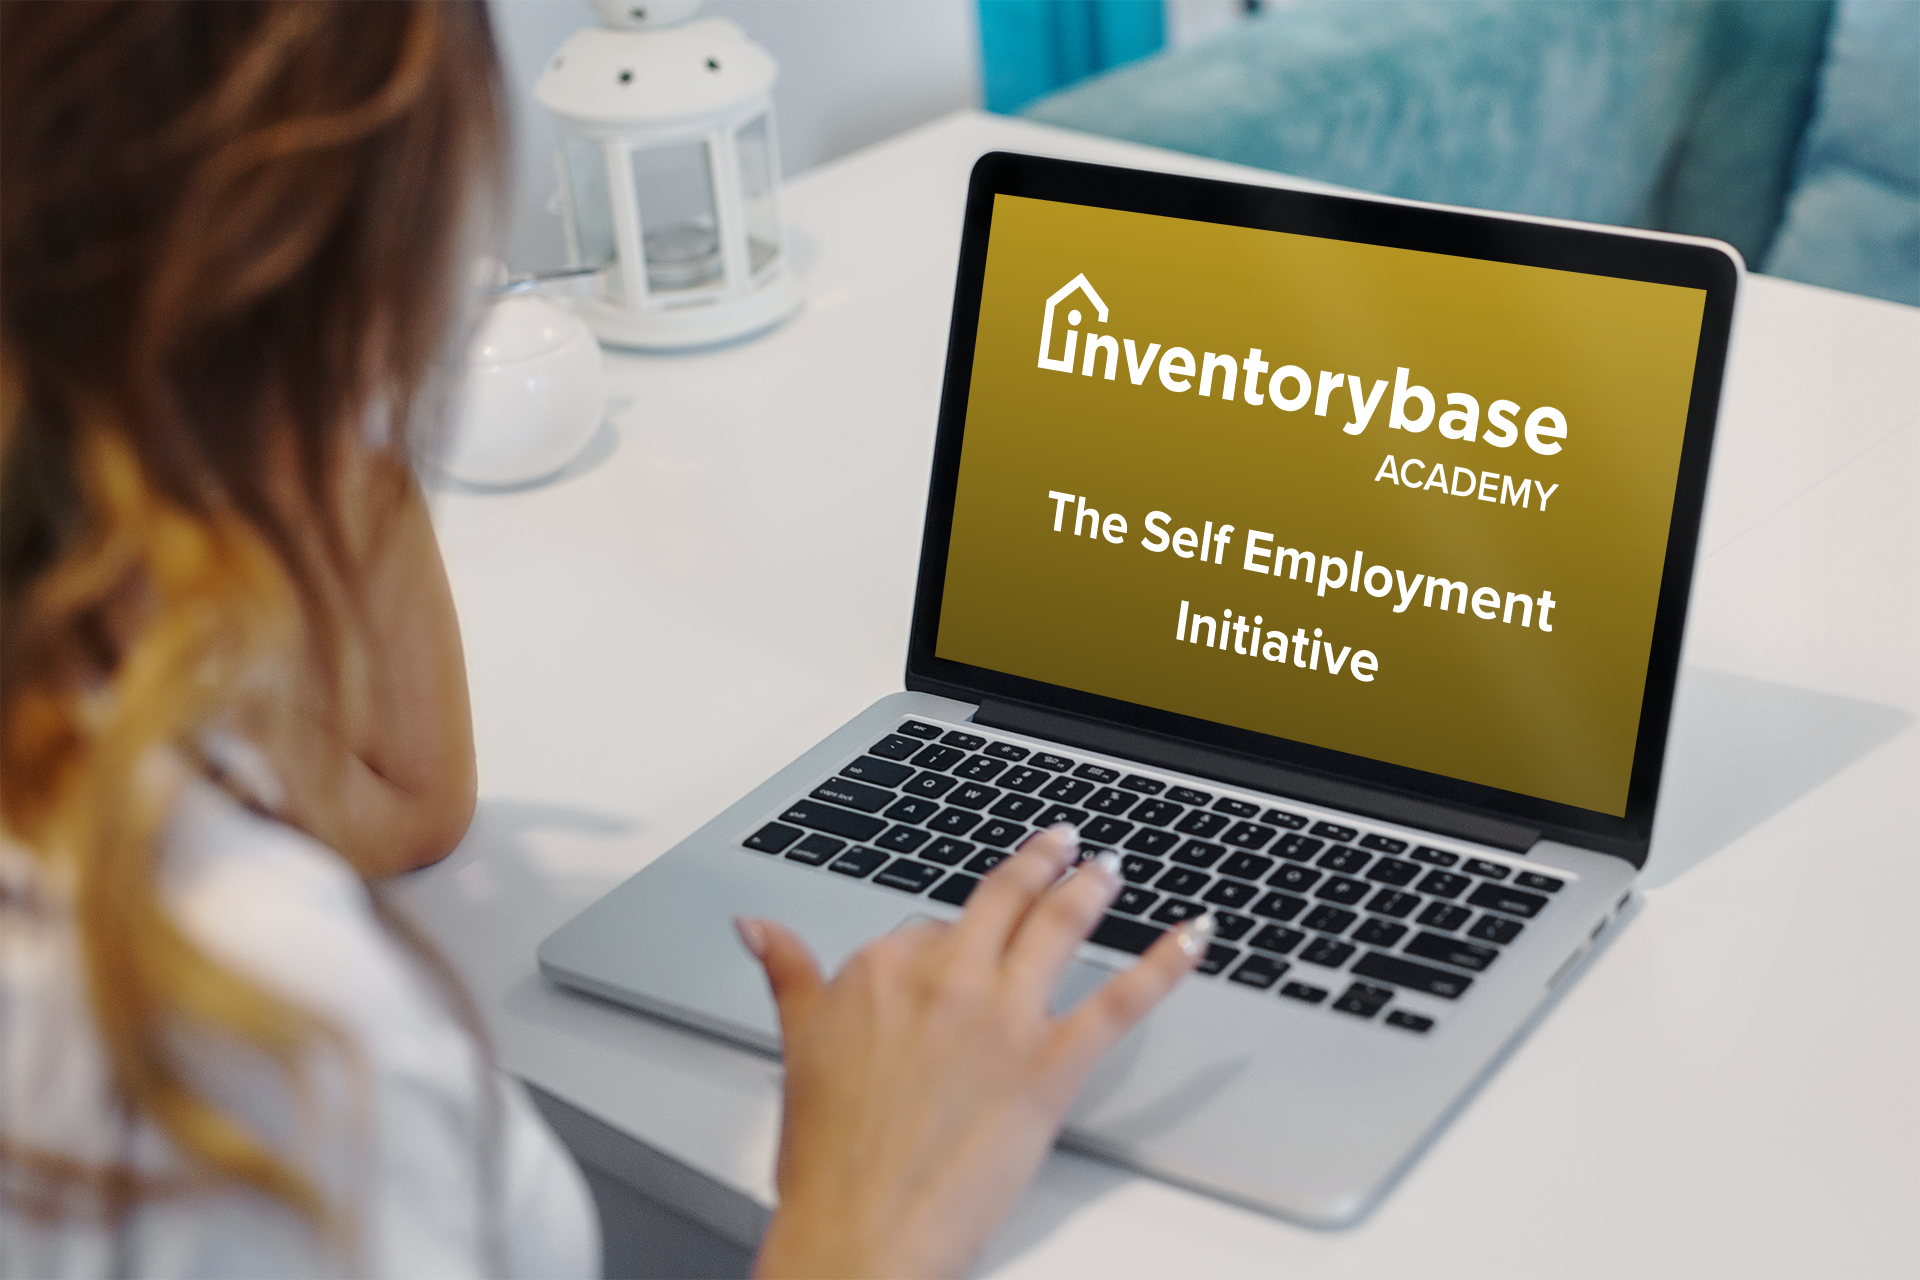 Introducing the InventoryBase Academy Self Employment Initiative